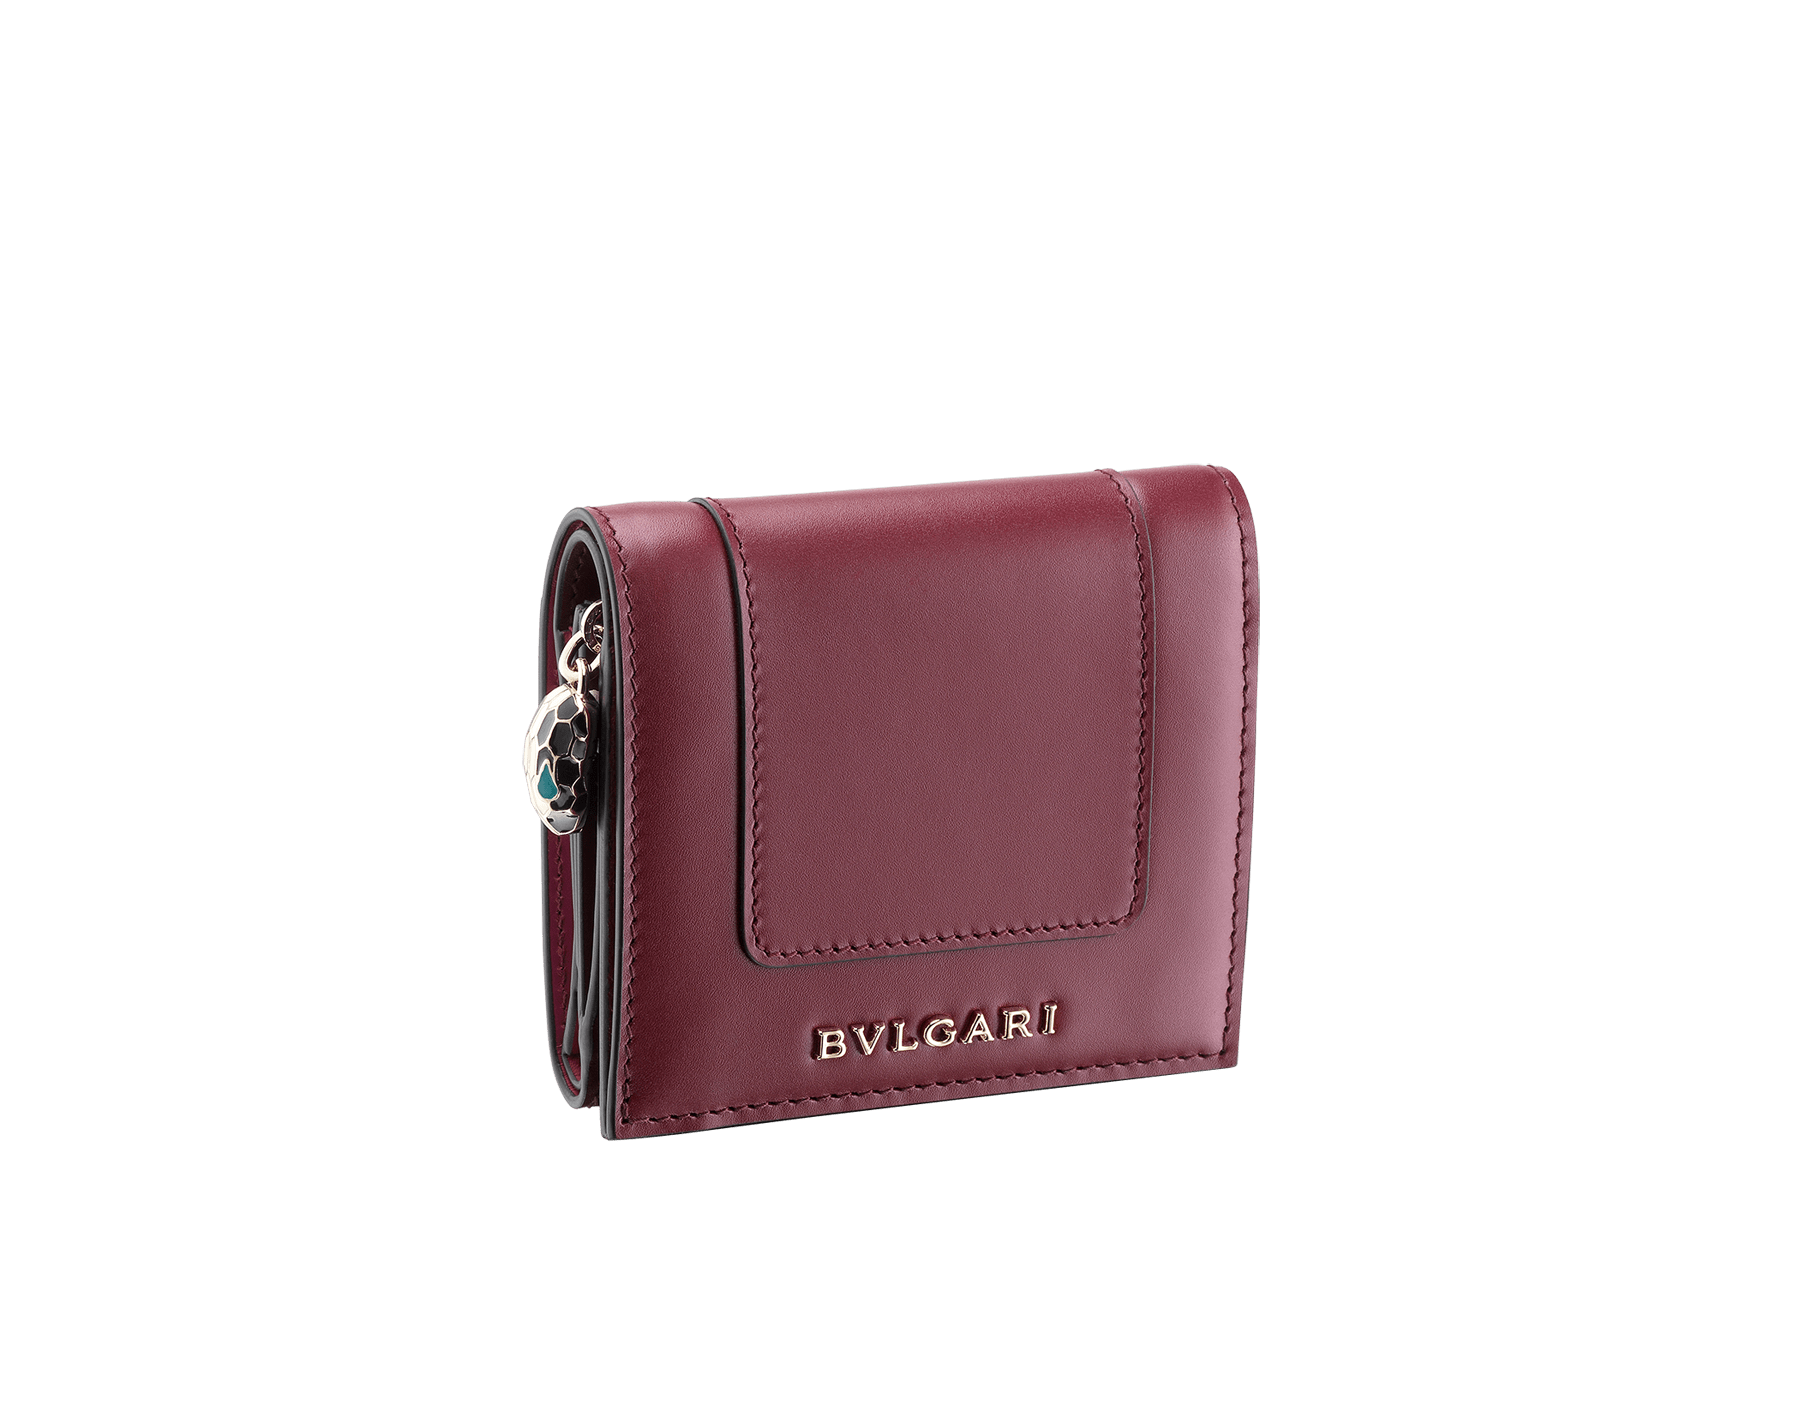 Serpenti Forever super compact wallet in roman garnet and pink spinel calf leather. Iconic snakehead zip puller in black and white enamel, with green malachite enamel eyes. 288036 image 1